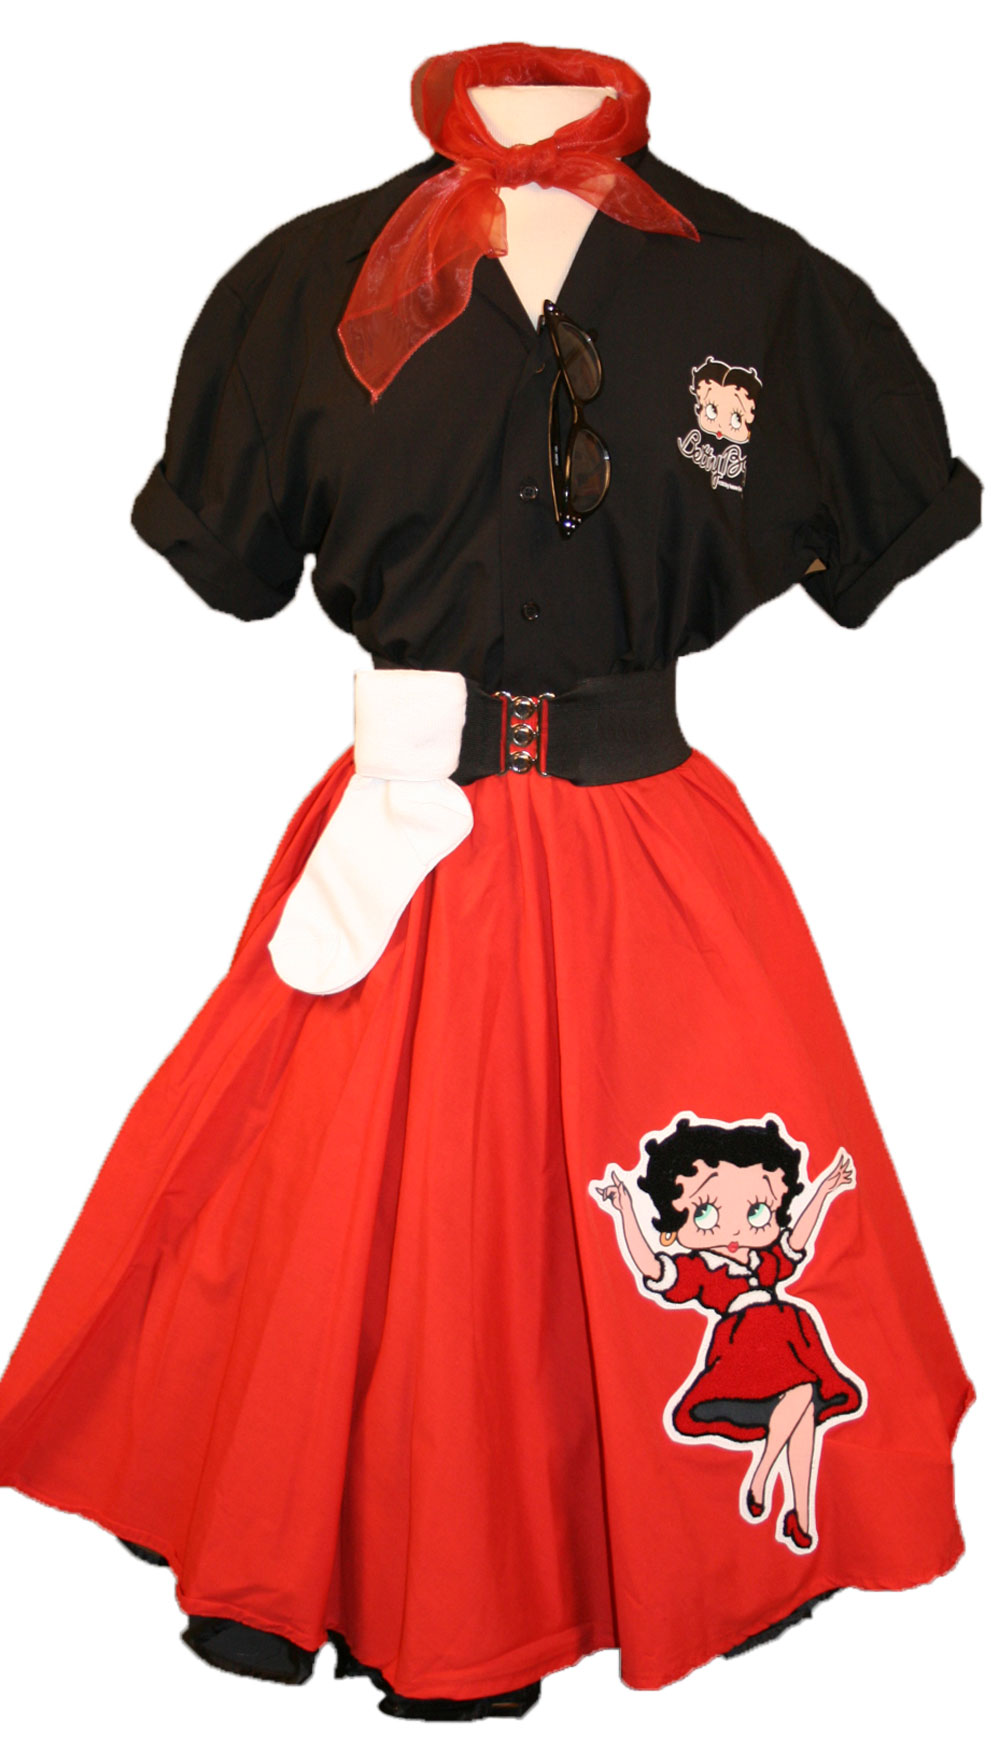 Adult Betty Boop Complete Outfit with Red Circle Skirt w/ Betty Boop Red Blow Up Dress Chenille & 50's Blouse